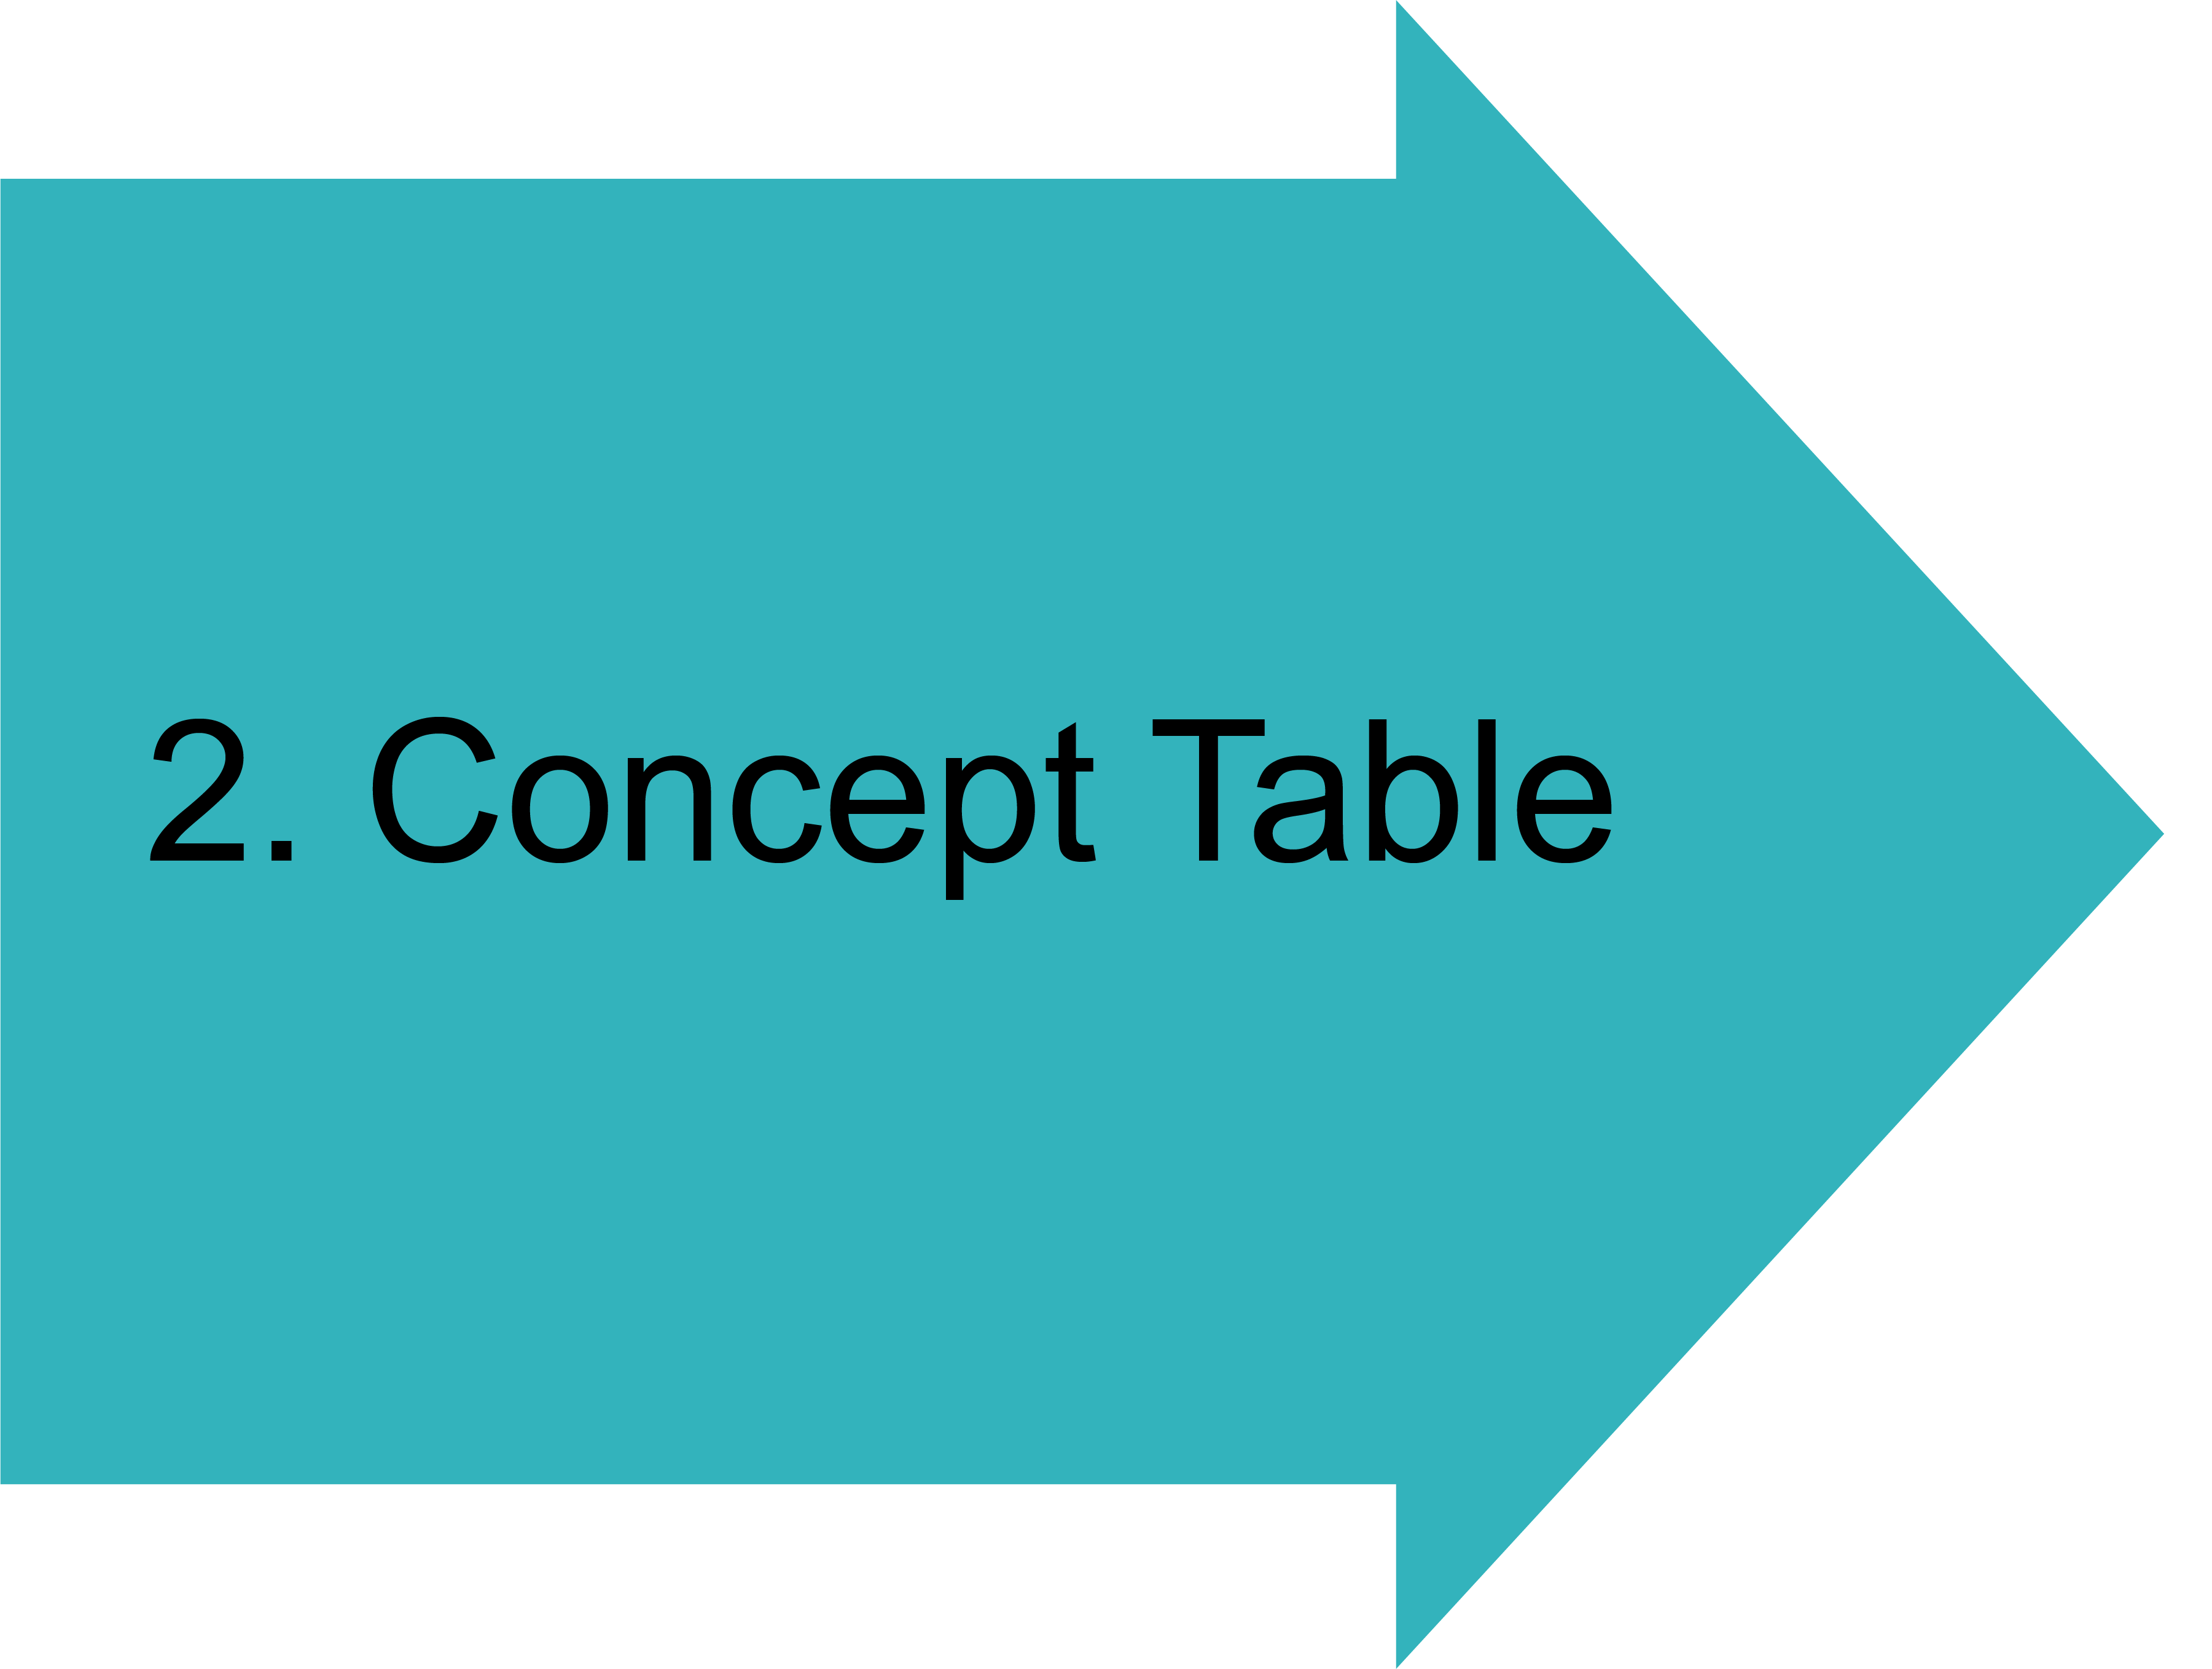 2. Concept Table